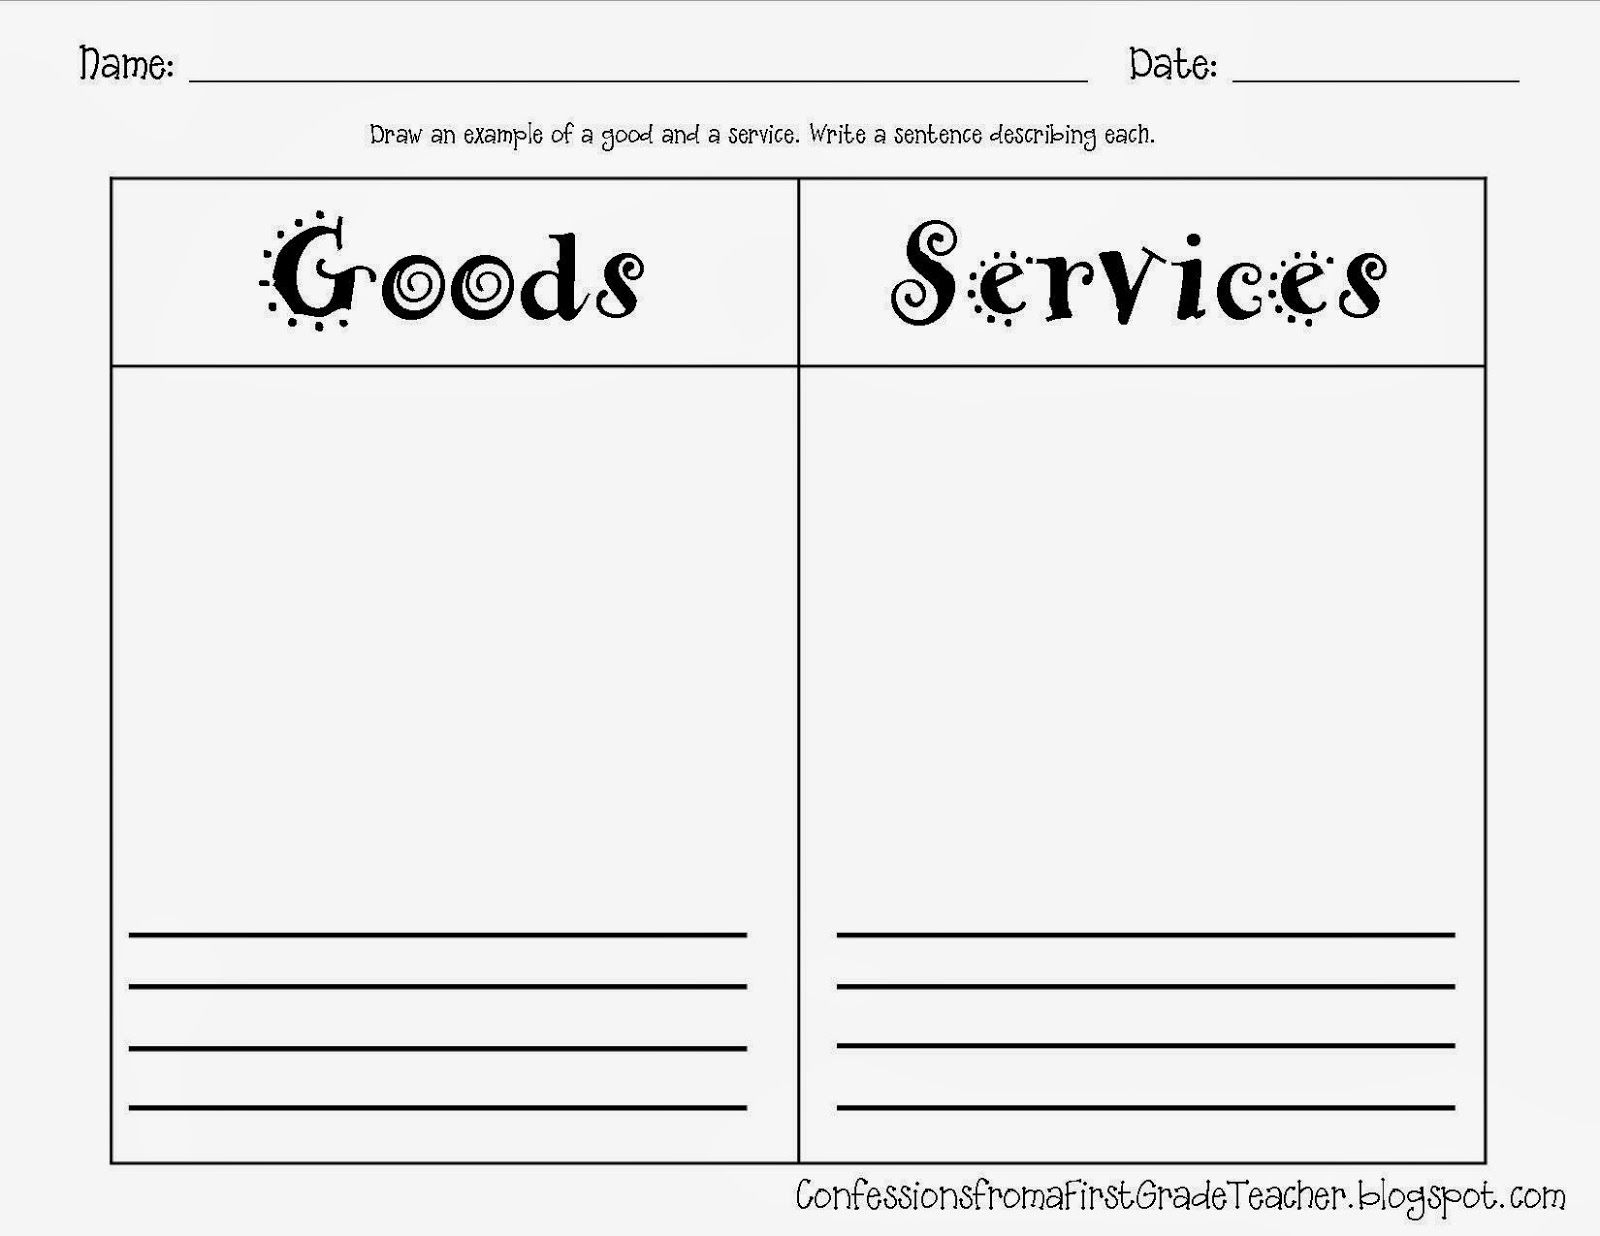 Worksheets Goods And Services Worksheet worksheets goods and services worksheet atidentity com free good definition cards pinterest definitions social studies economics